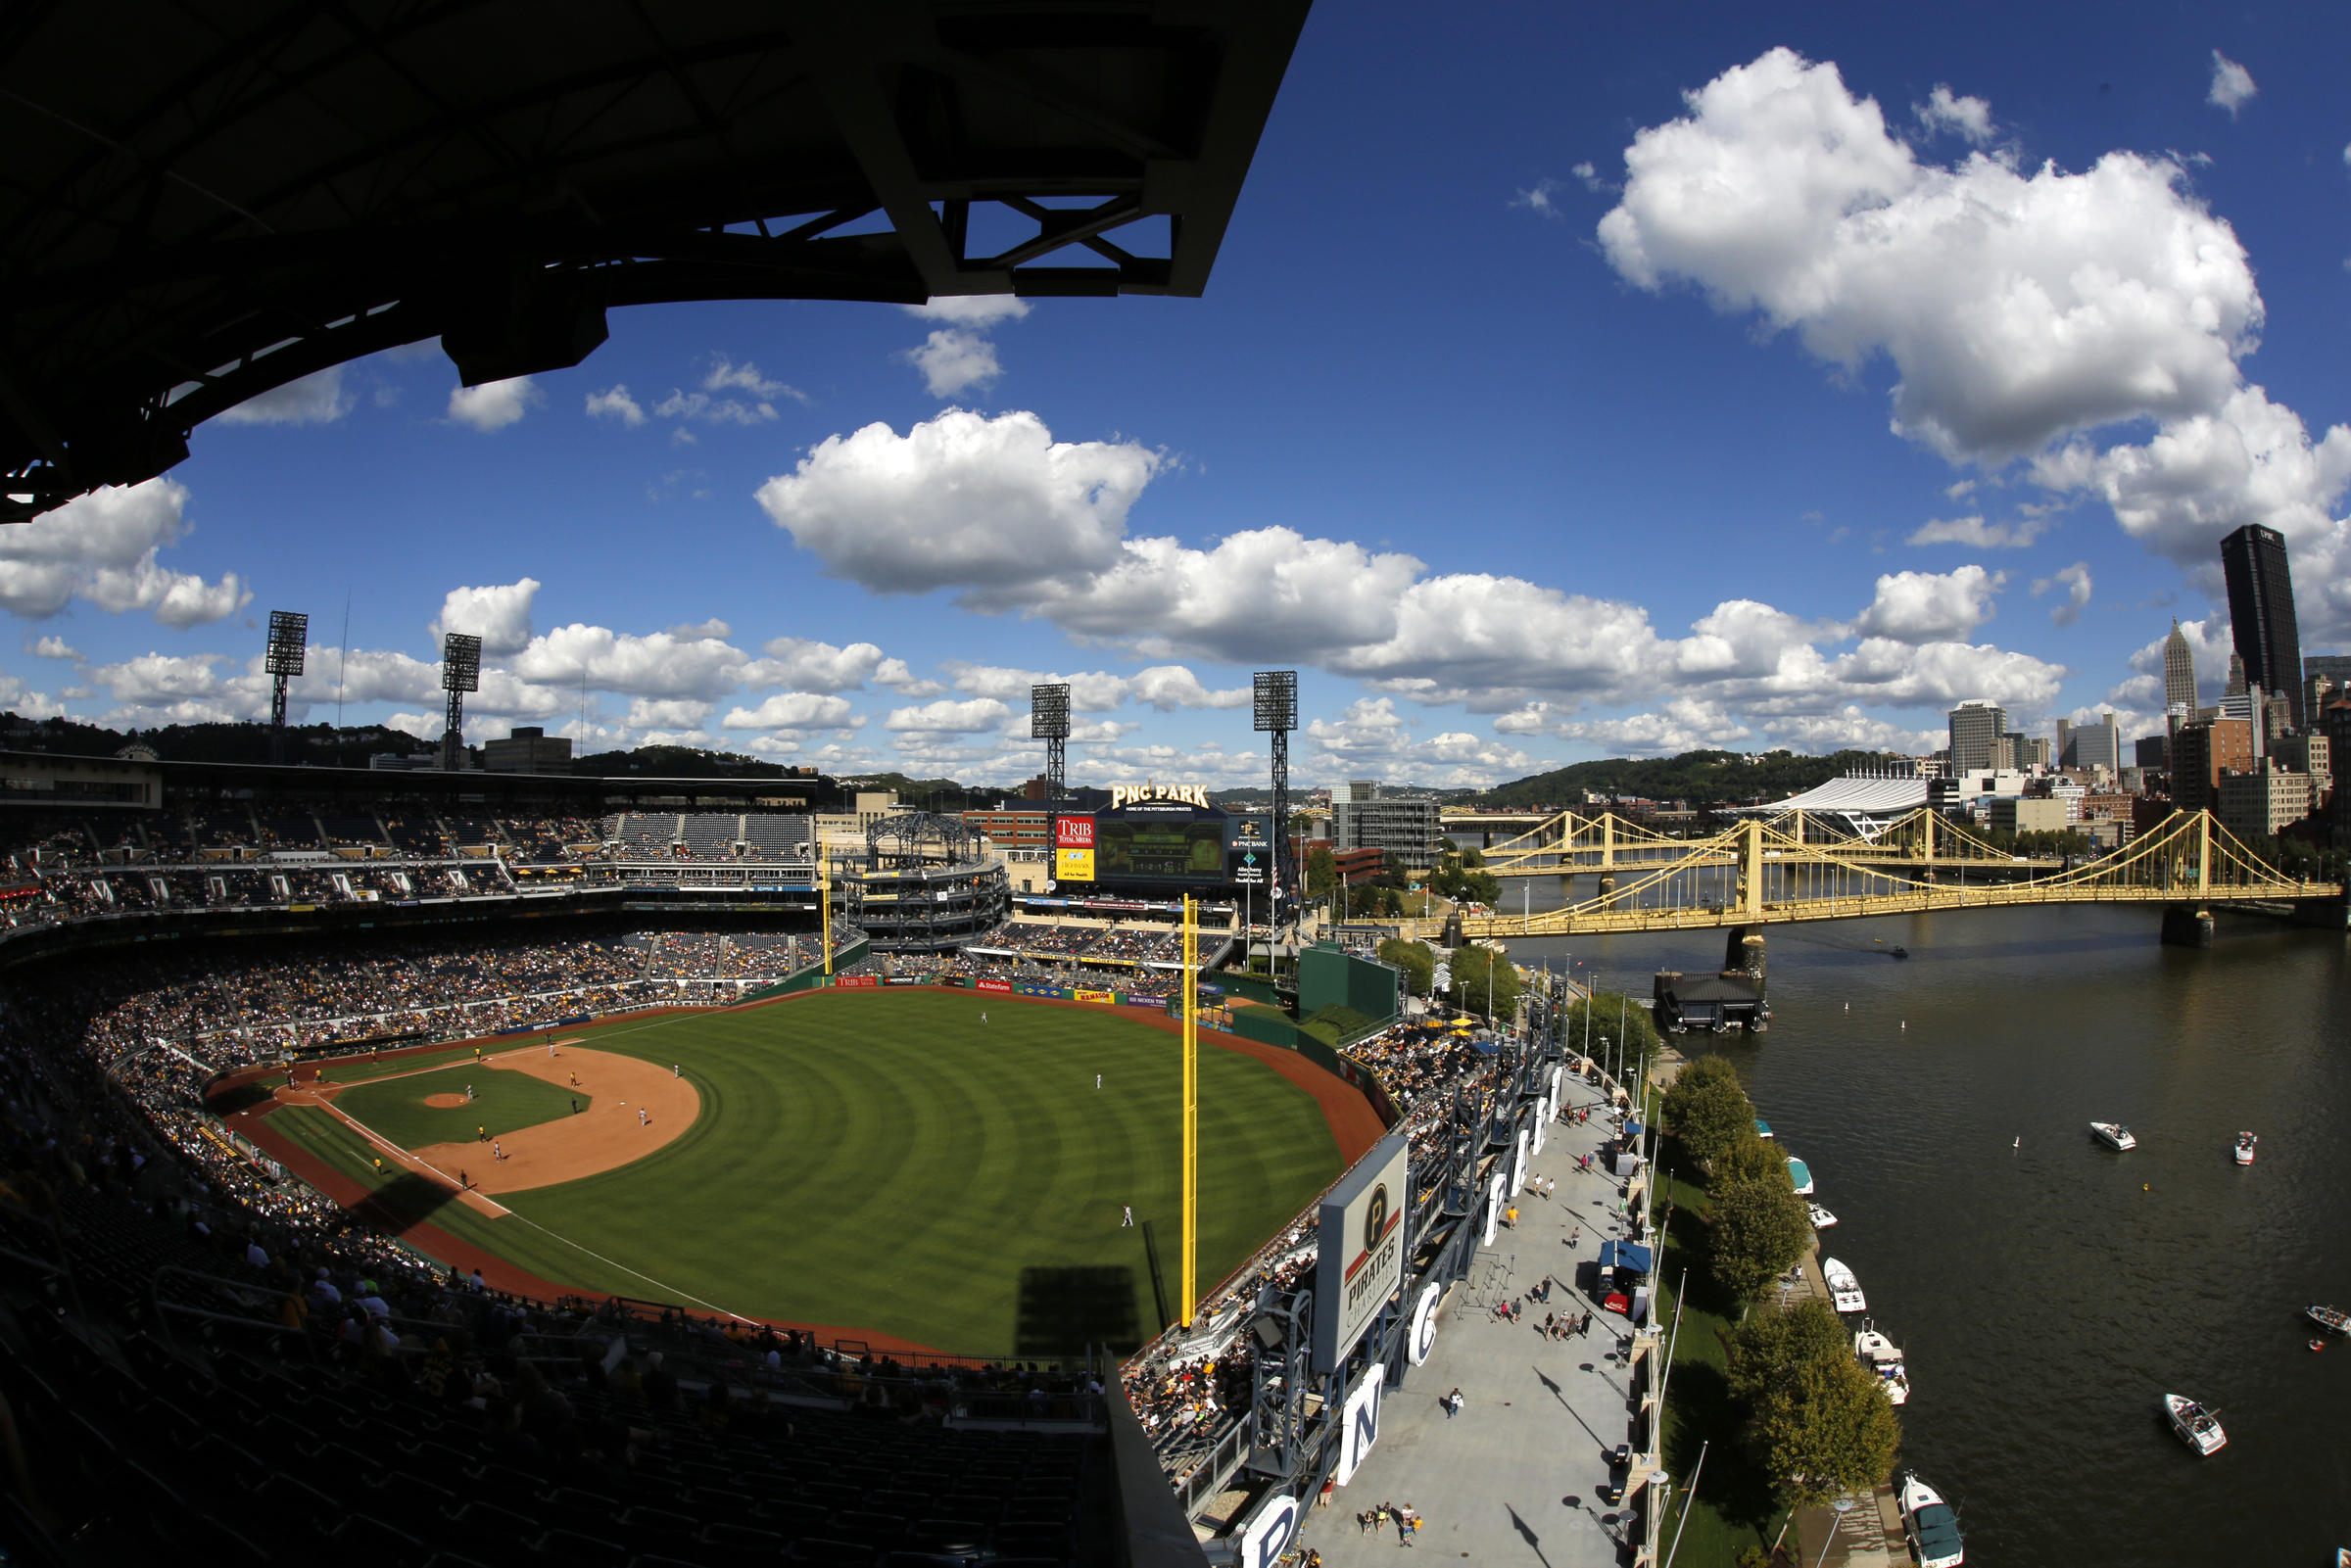 The Pittsburgh Pirates Take On Atlanta Braves At 105 Pm For Their 2017 Home Opener Unlike Reds Game Picture Here Last September